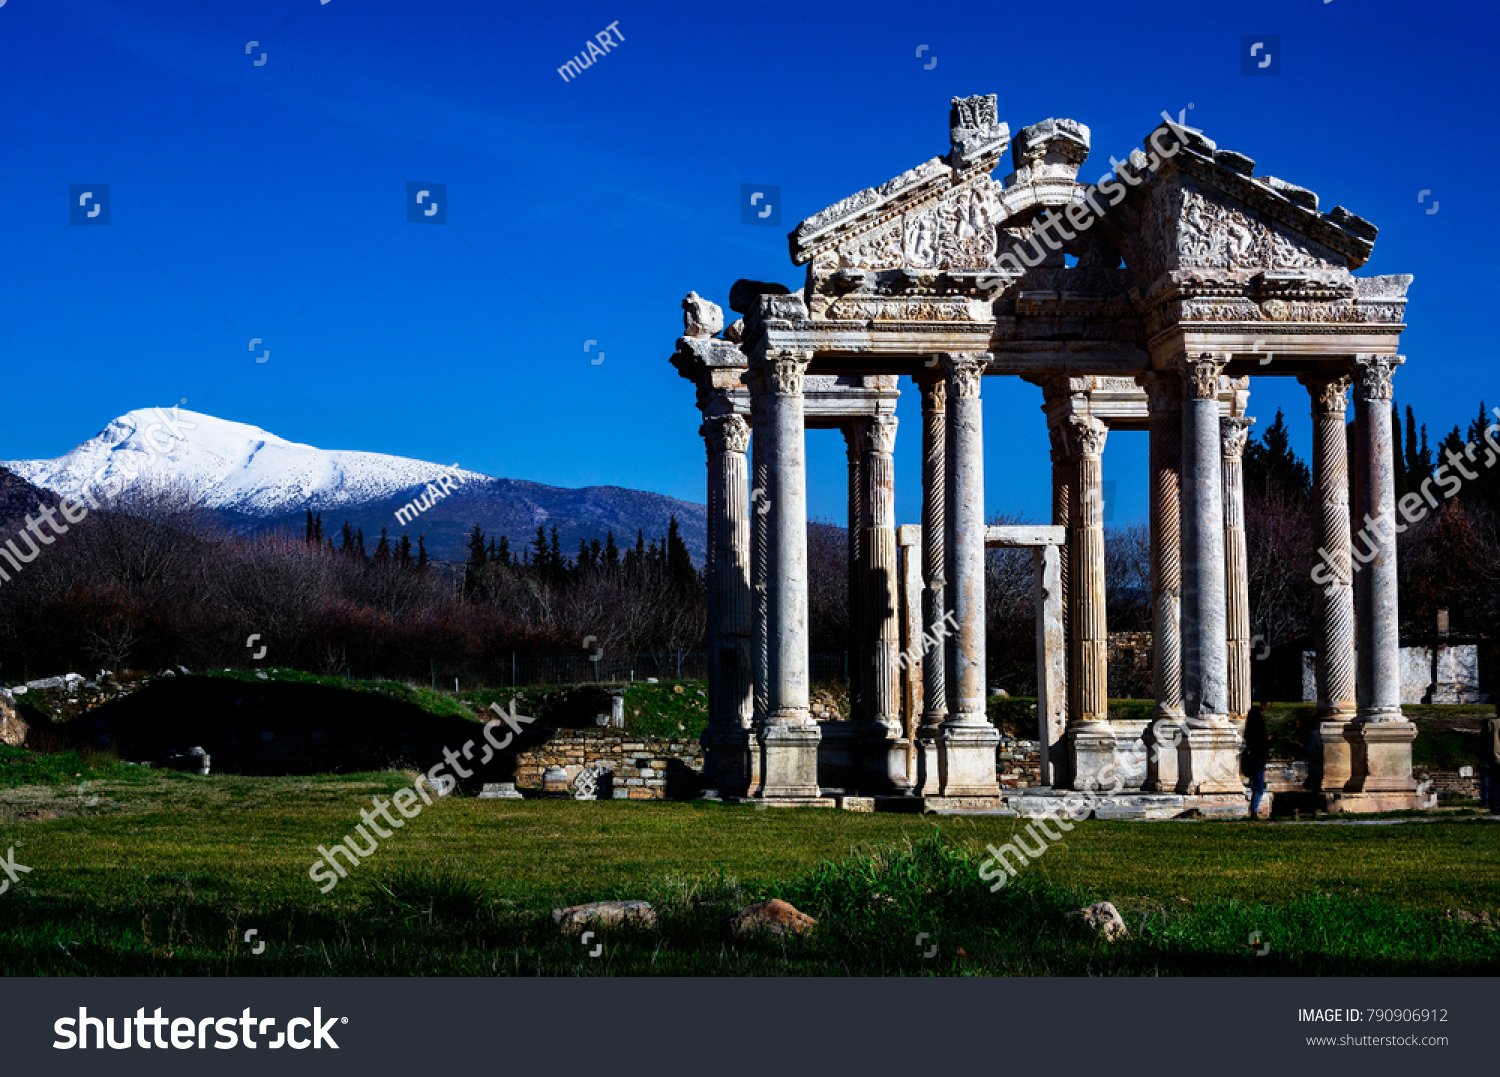 Aphrodisias Antique City was last year listed on the Unesco Permanent Heritage List. Our country was the 17th entity that entered this list. At a meeting held in Ku?adas? last week, the Aydin Governor #790906912